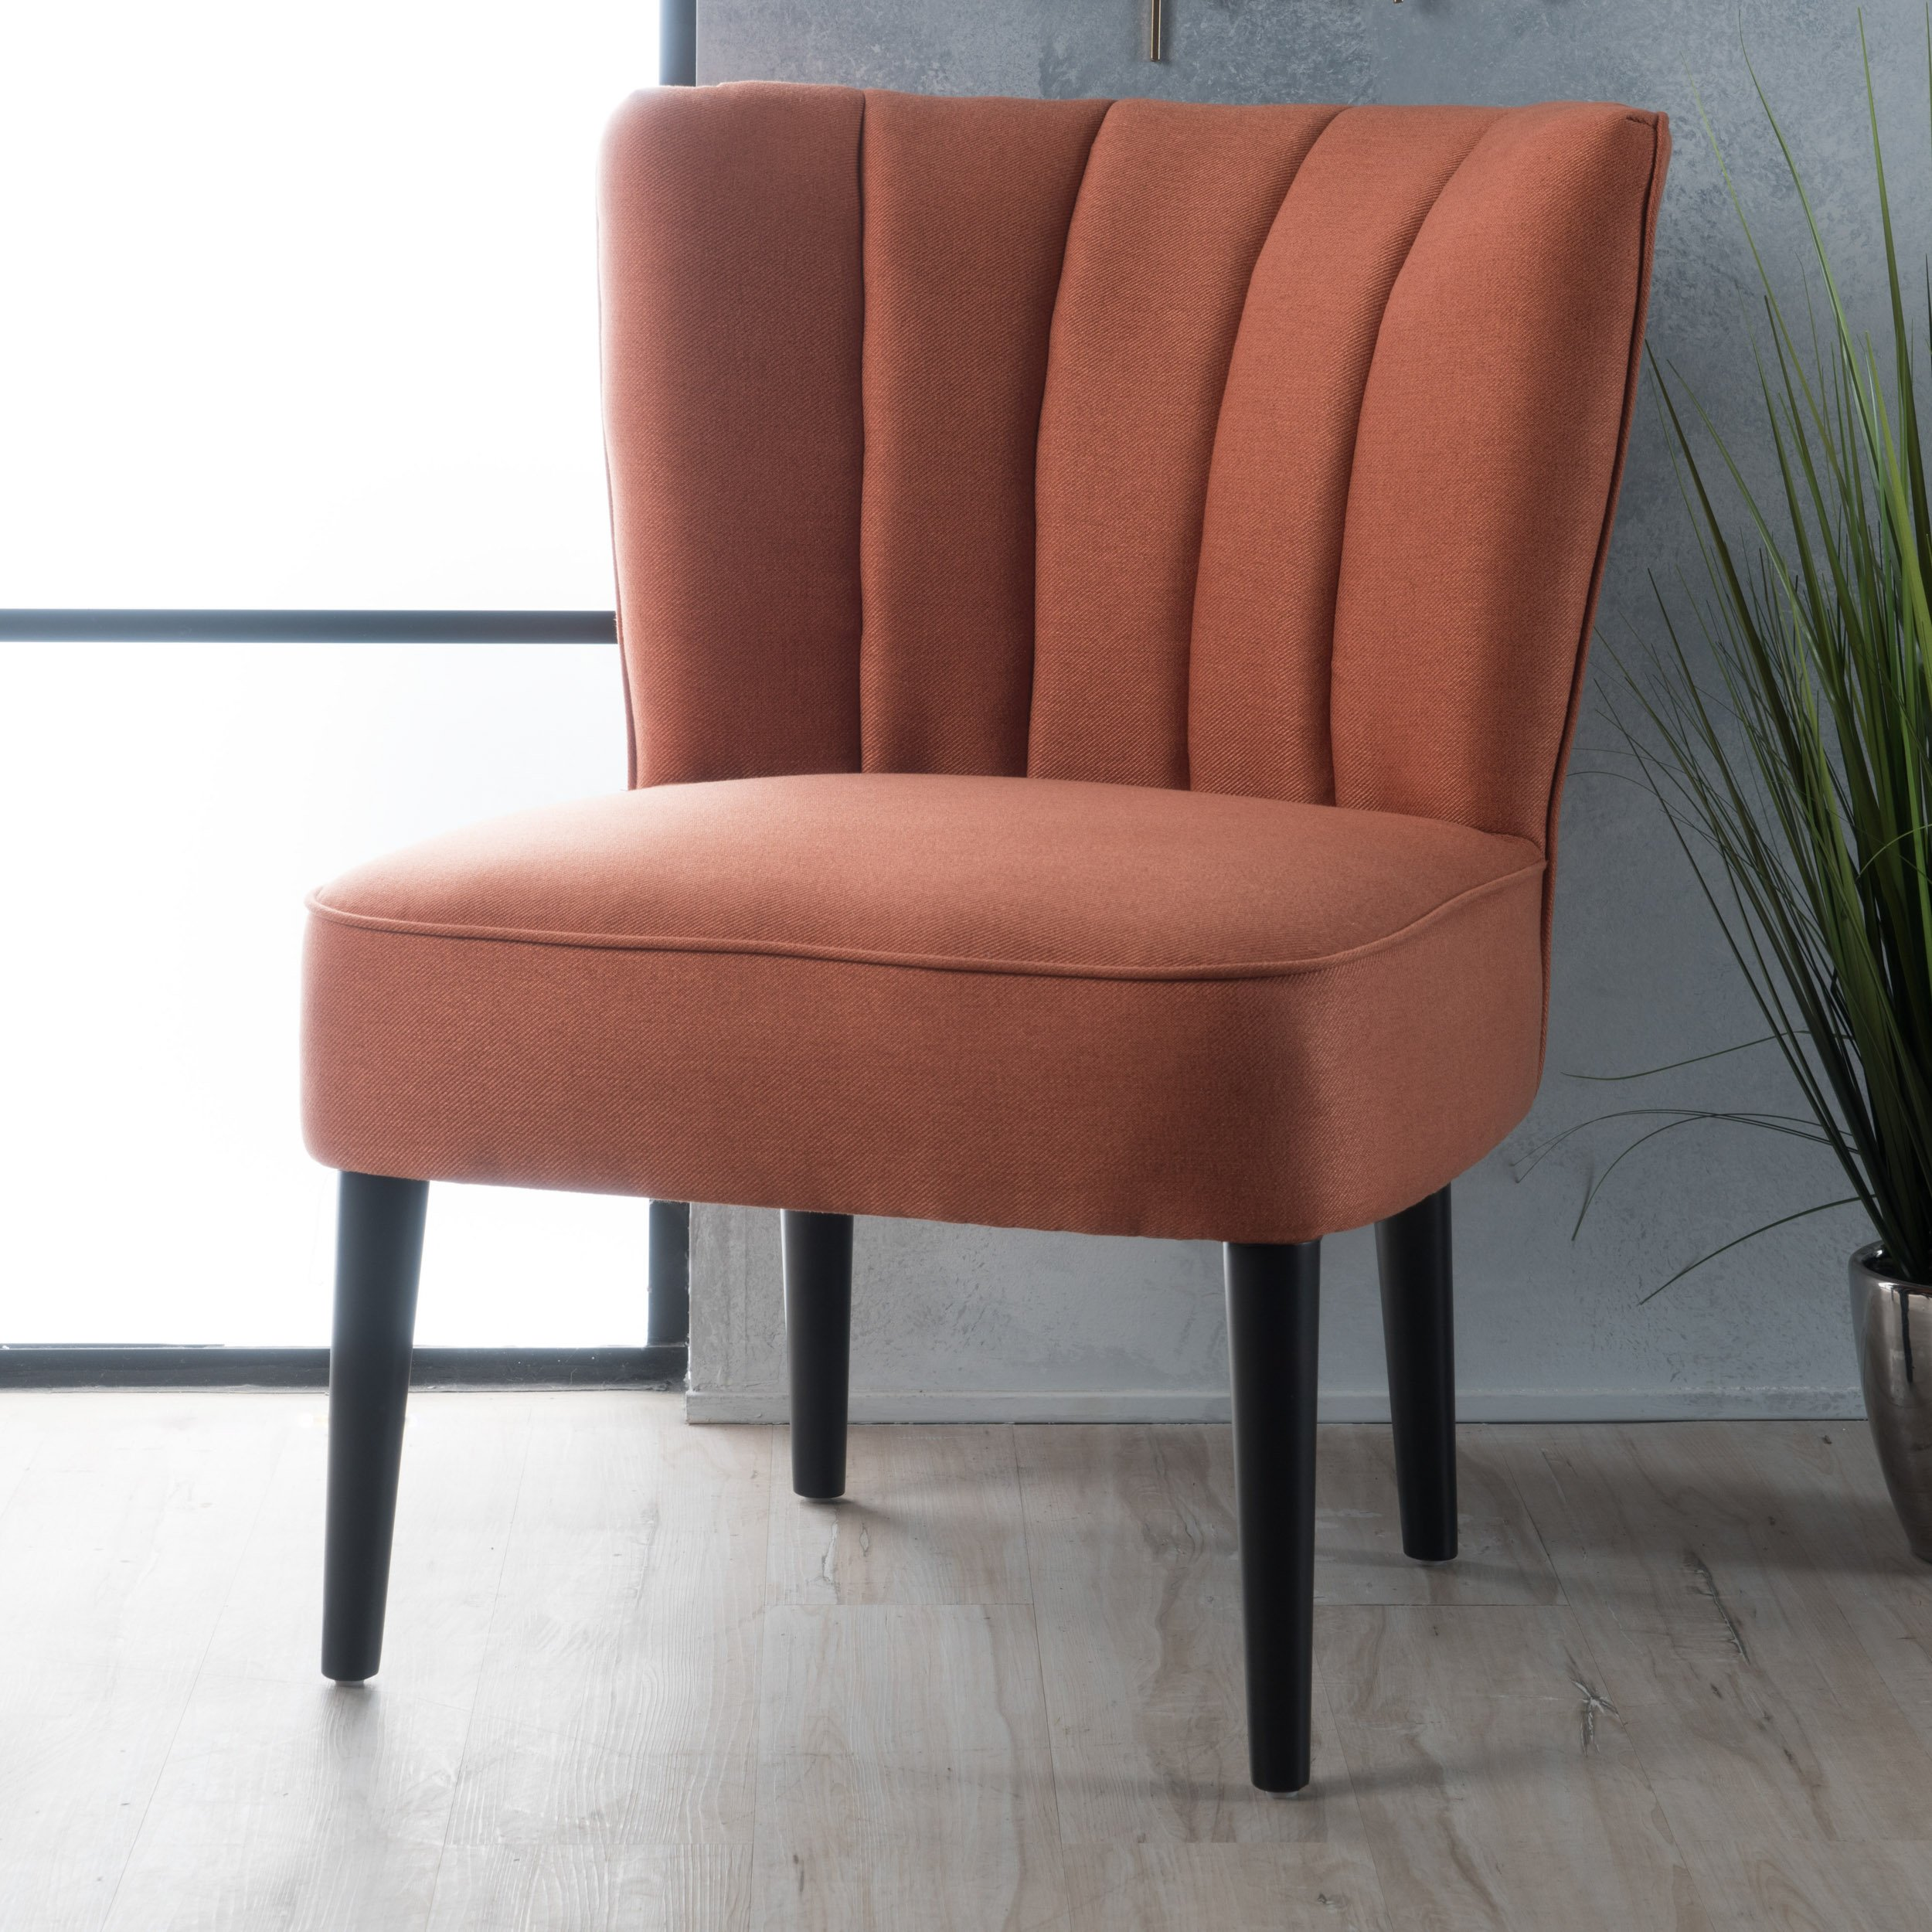 Christopher Knight Home 300314 Erena Accent Chair Orange